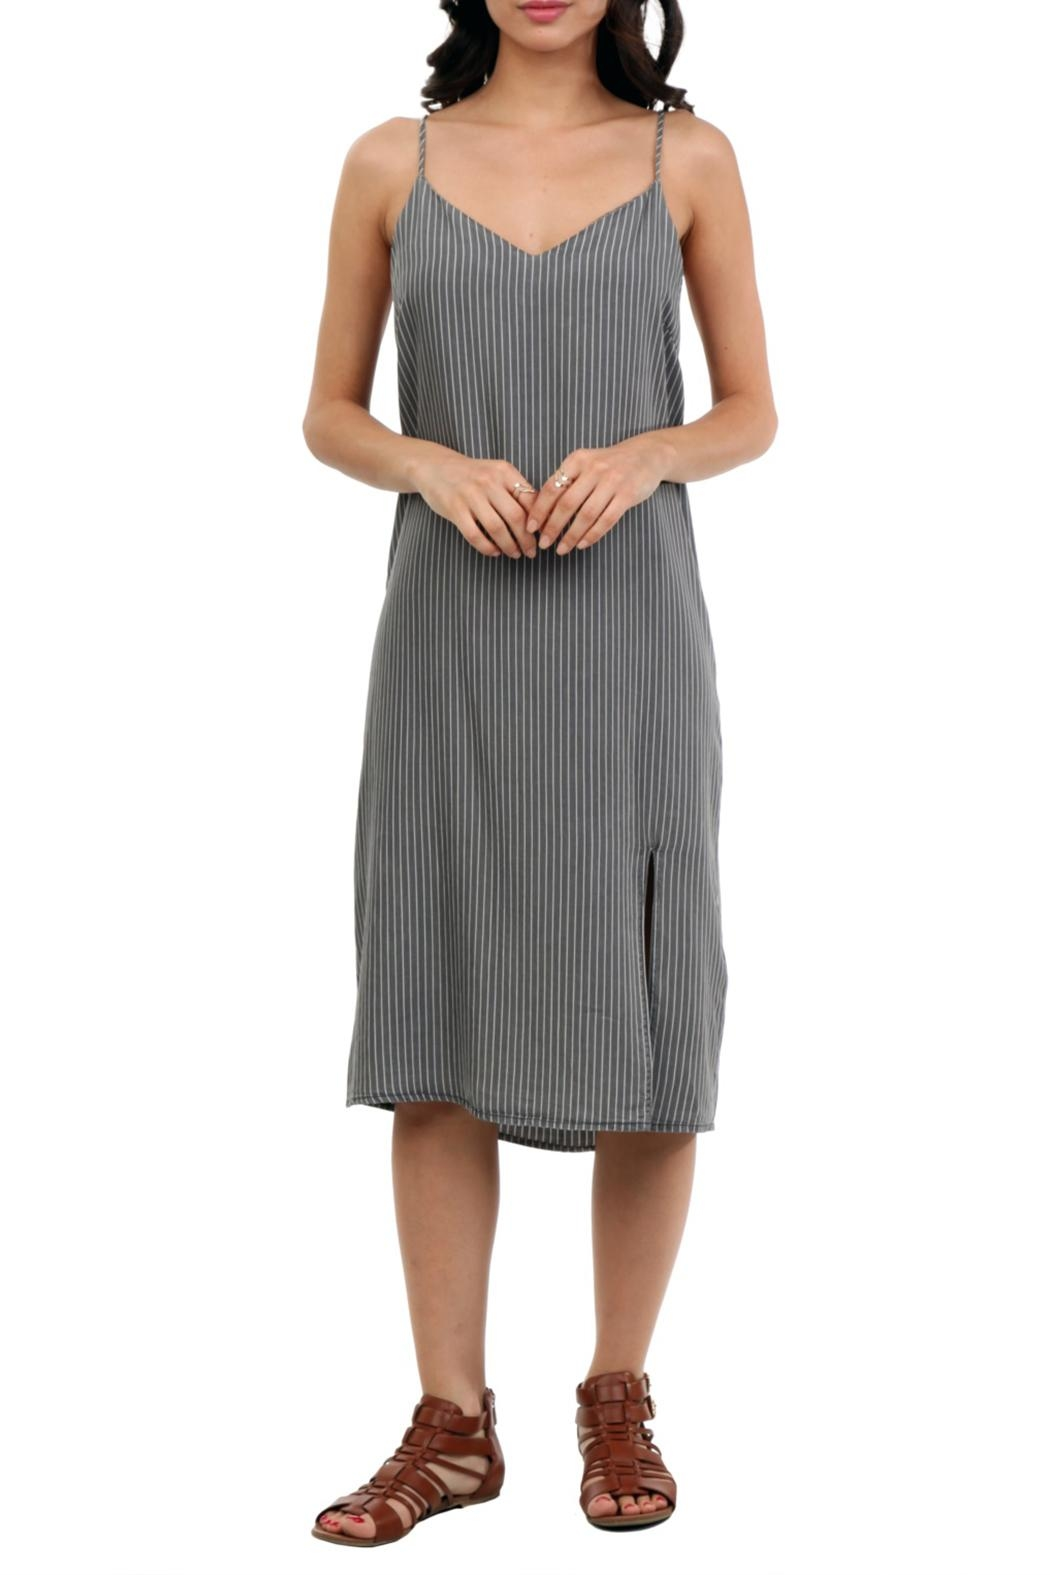 Naked Zebra Midi Denim Dress - Main Image